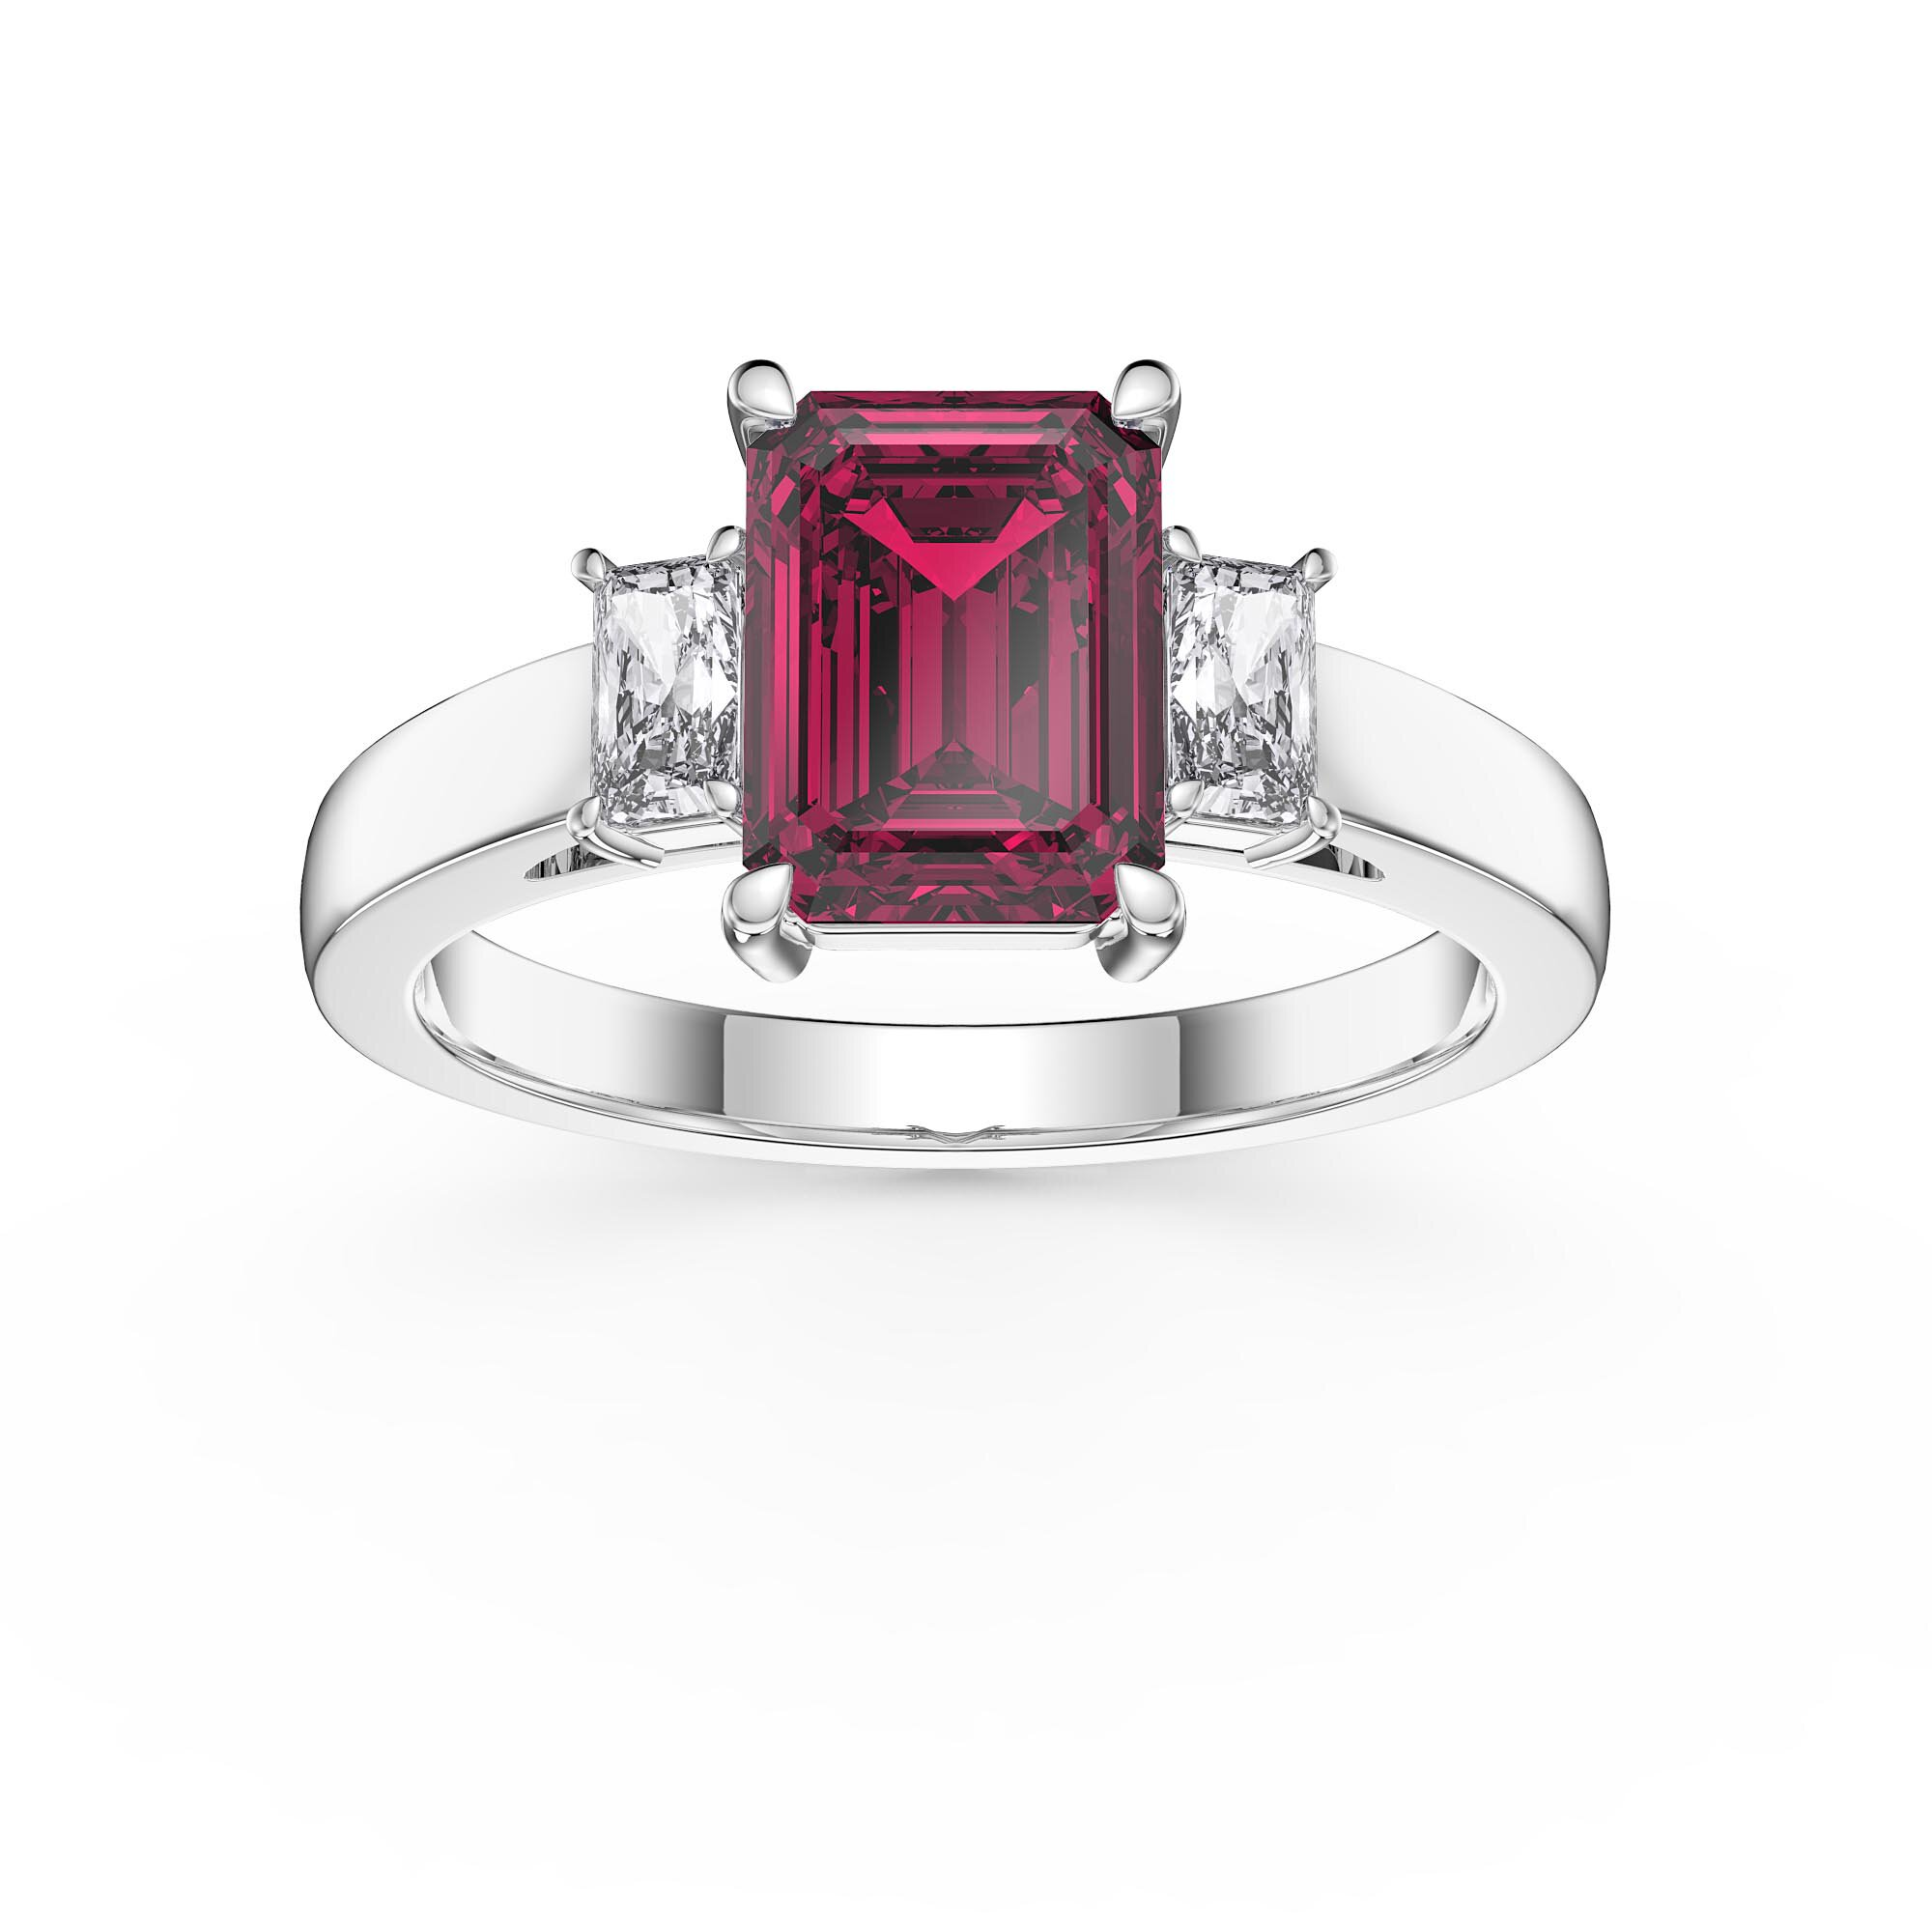 Details about  /2.5 ct Princess Cut Ruby Stone Wedding Bridal Promise Ring 14k Rose Gold